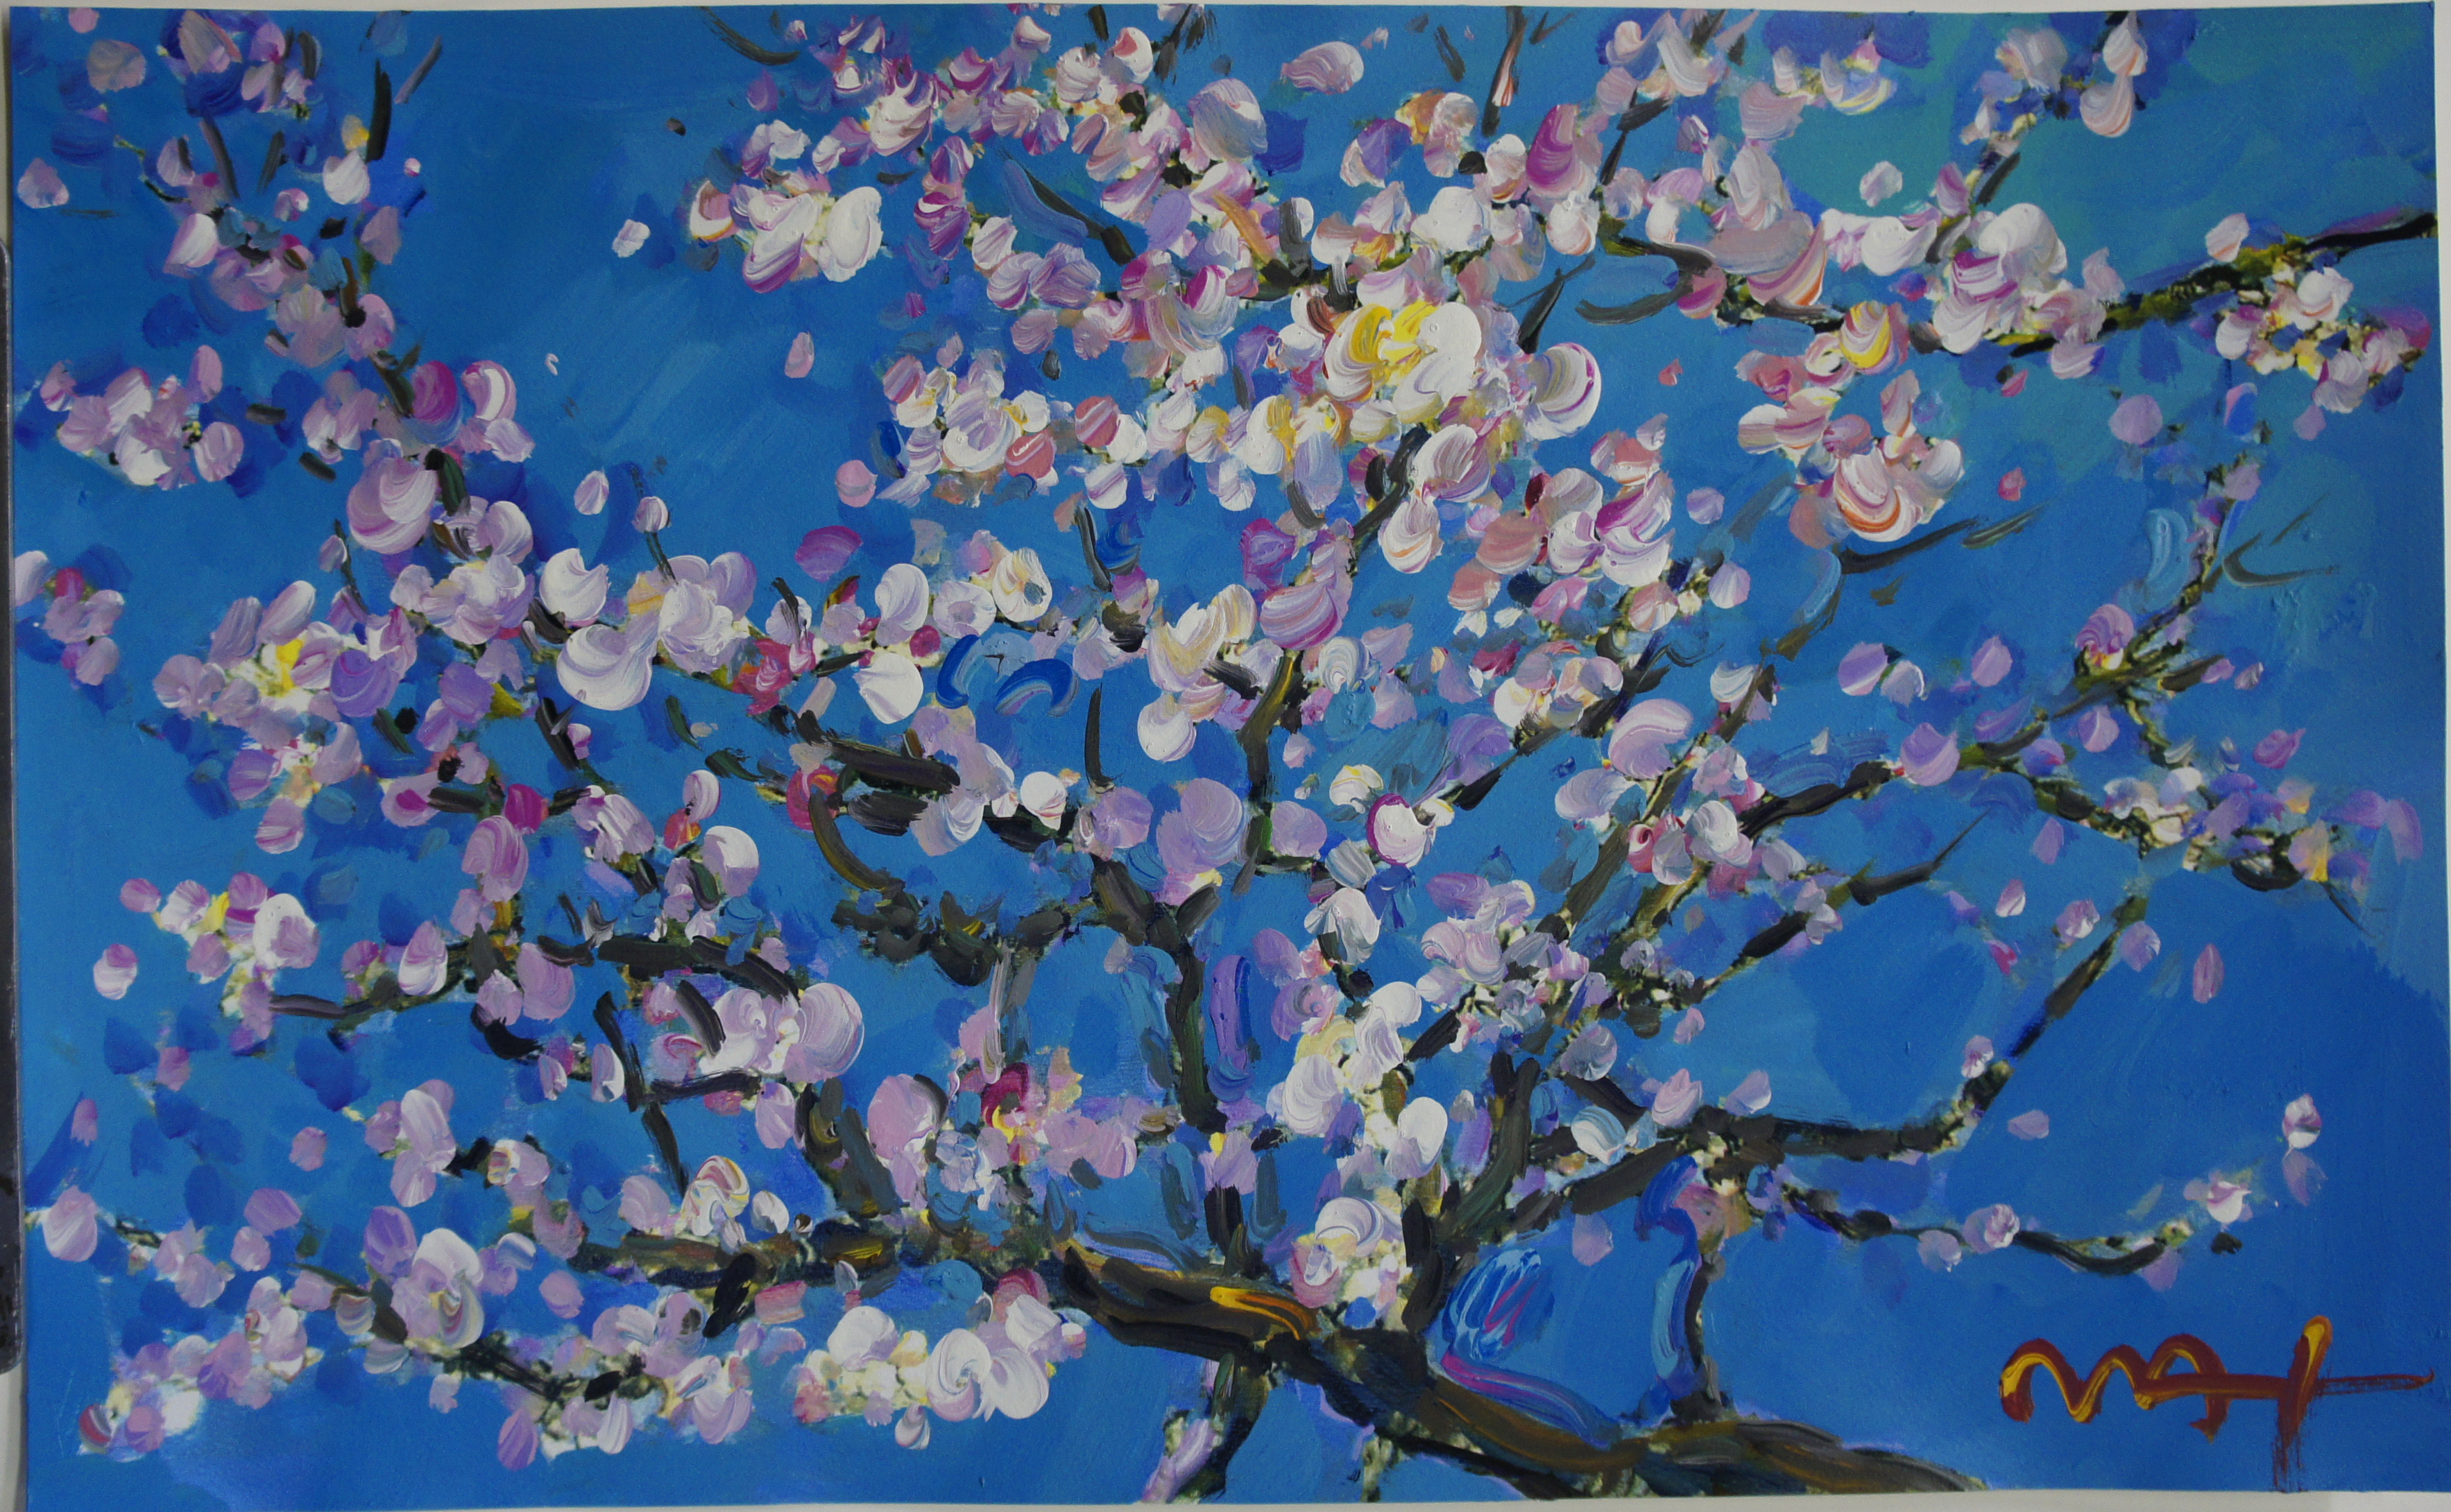 Van Gogh Almond Blossom Wallpaper Top Pictures Gallery Online 3533x2180